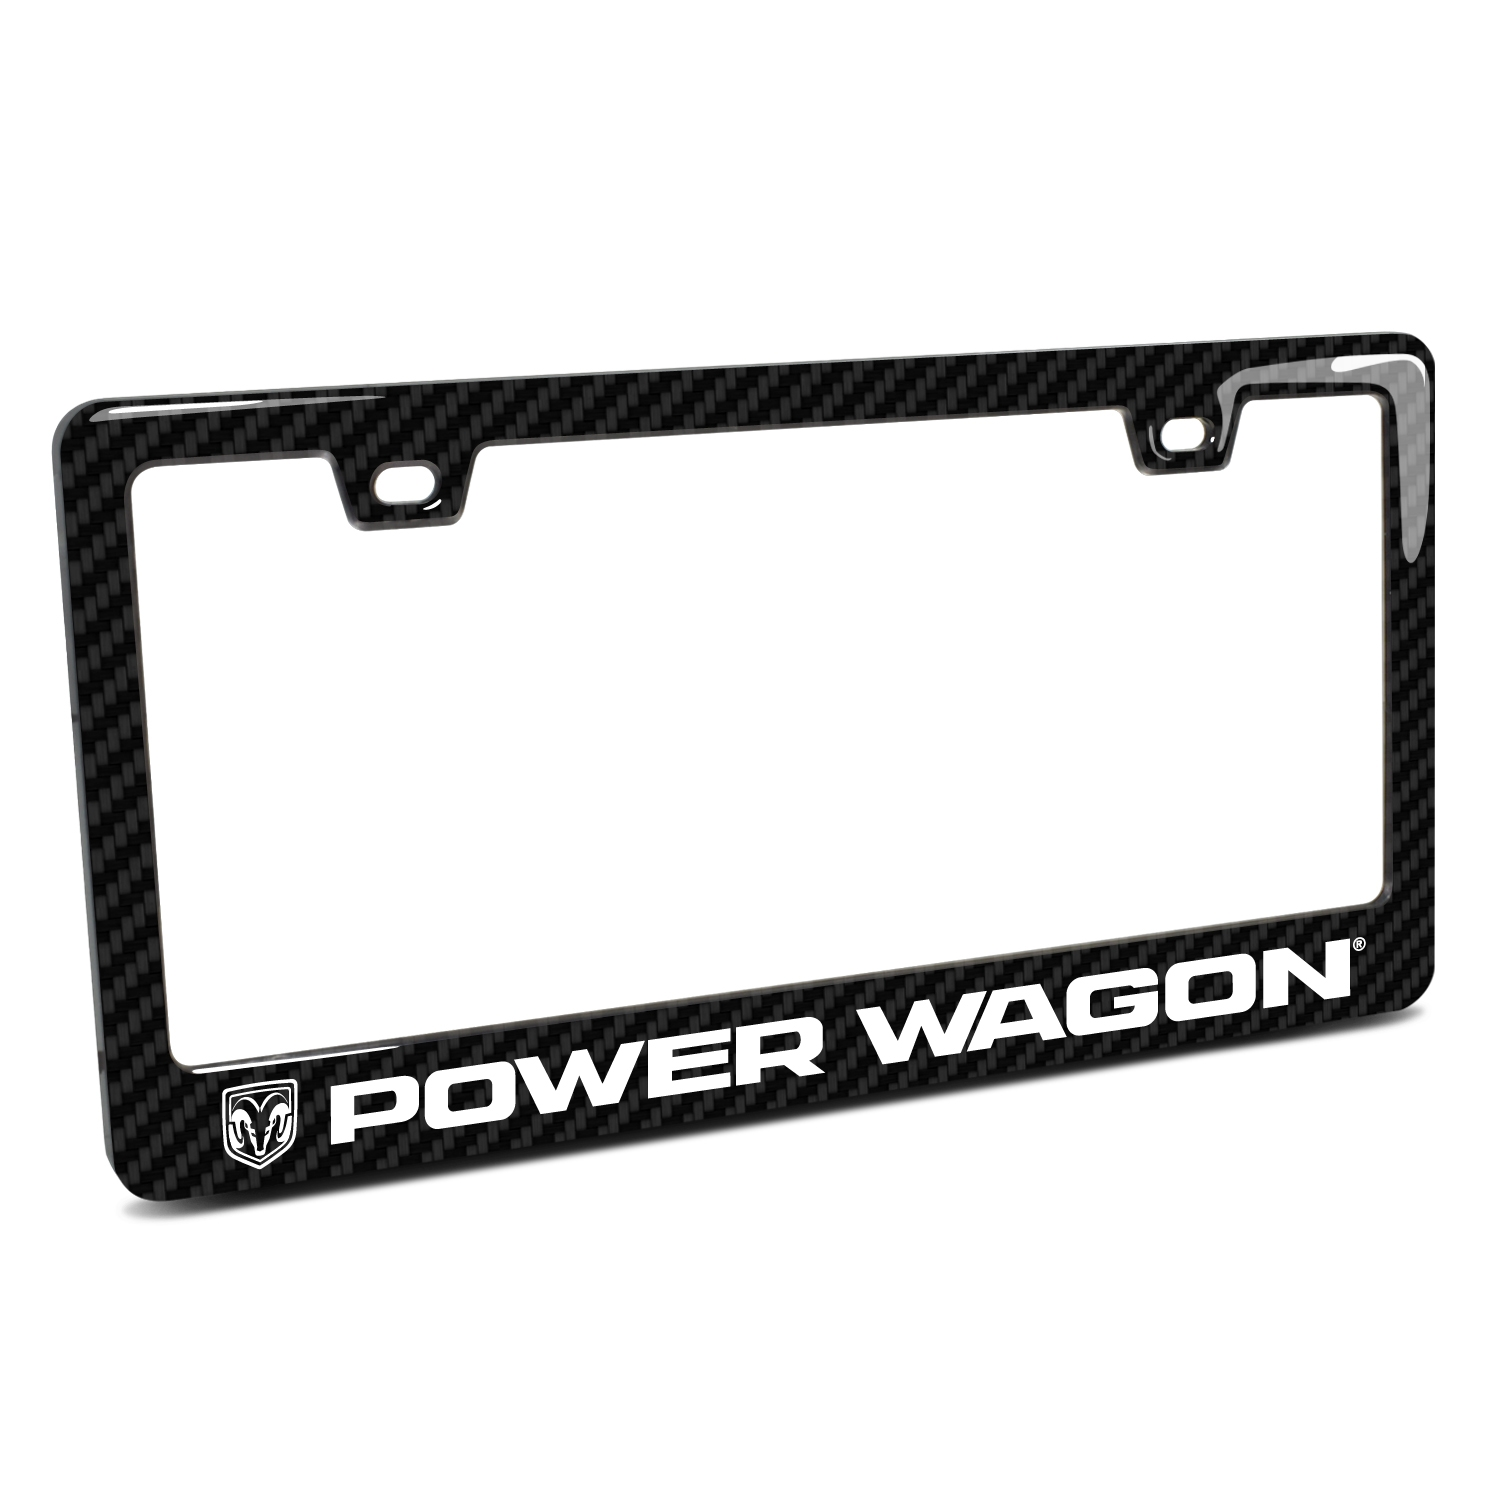 RAM Power Wagon Black Real 3K Carbon Fiber Finish ABS Plastic License Plate Frame